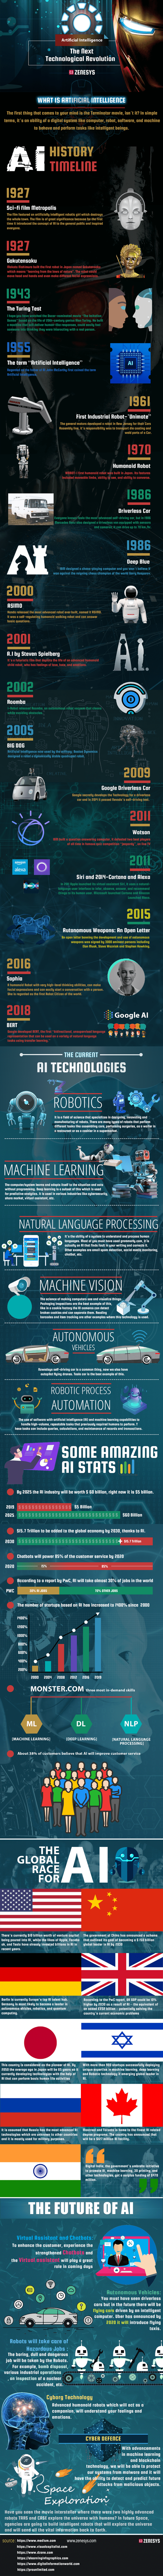 Artificial Intelligence - The Great Technological Revolution [Infographic]